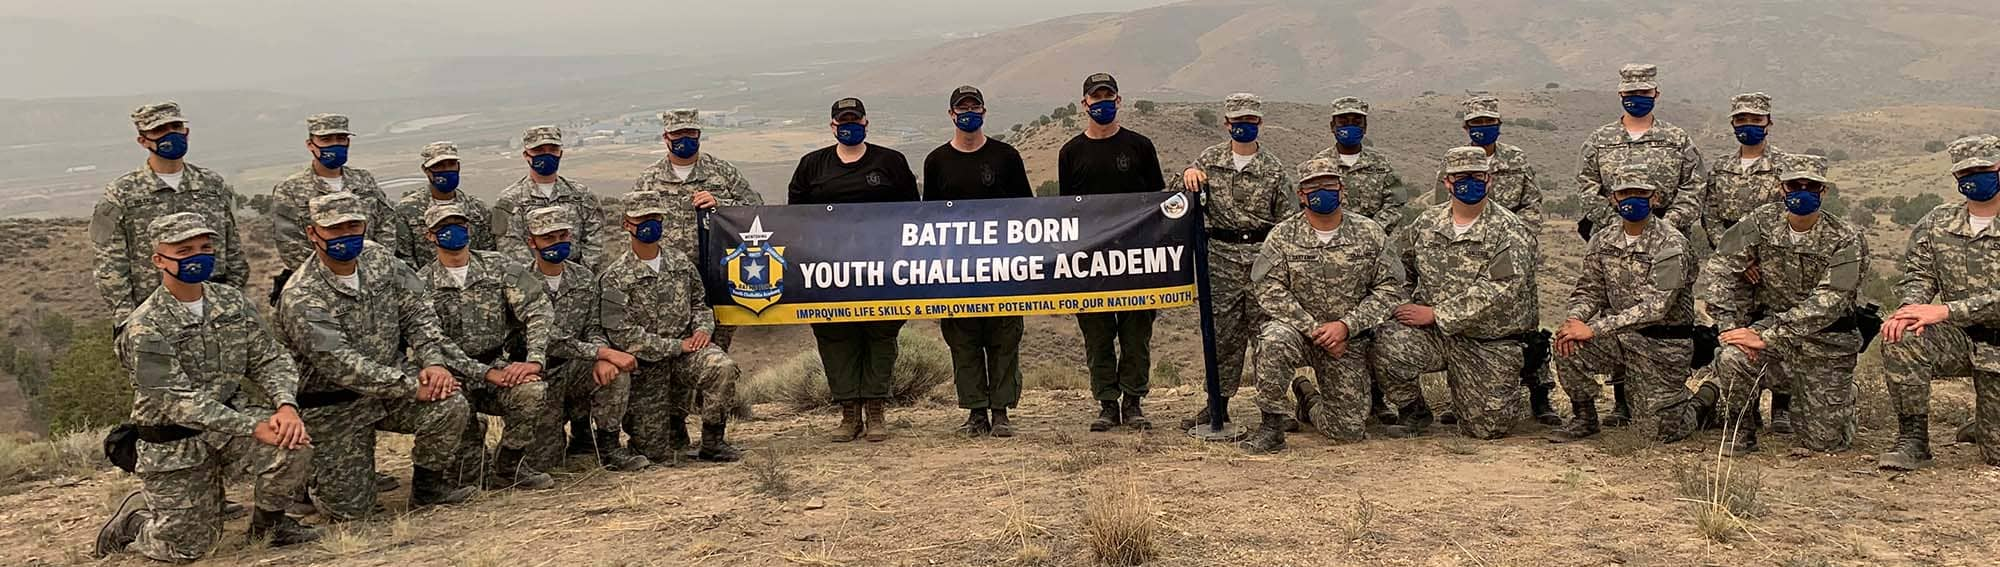 Students posing with Battle Born banner at the top of a mountain